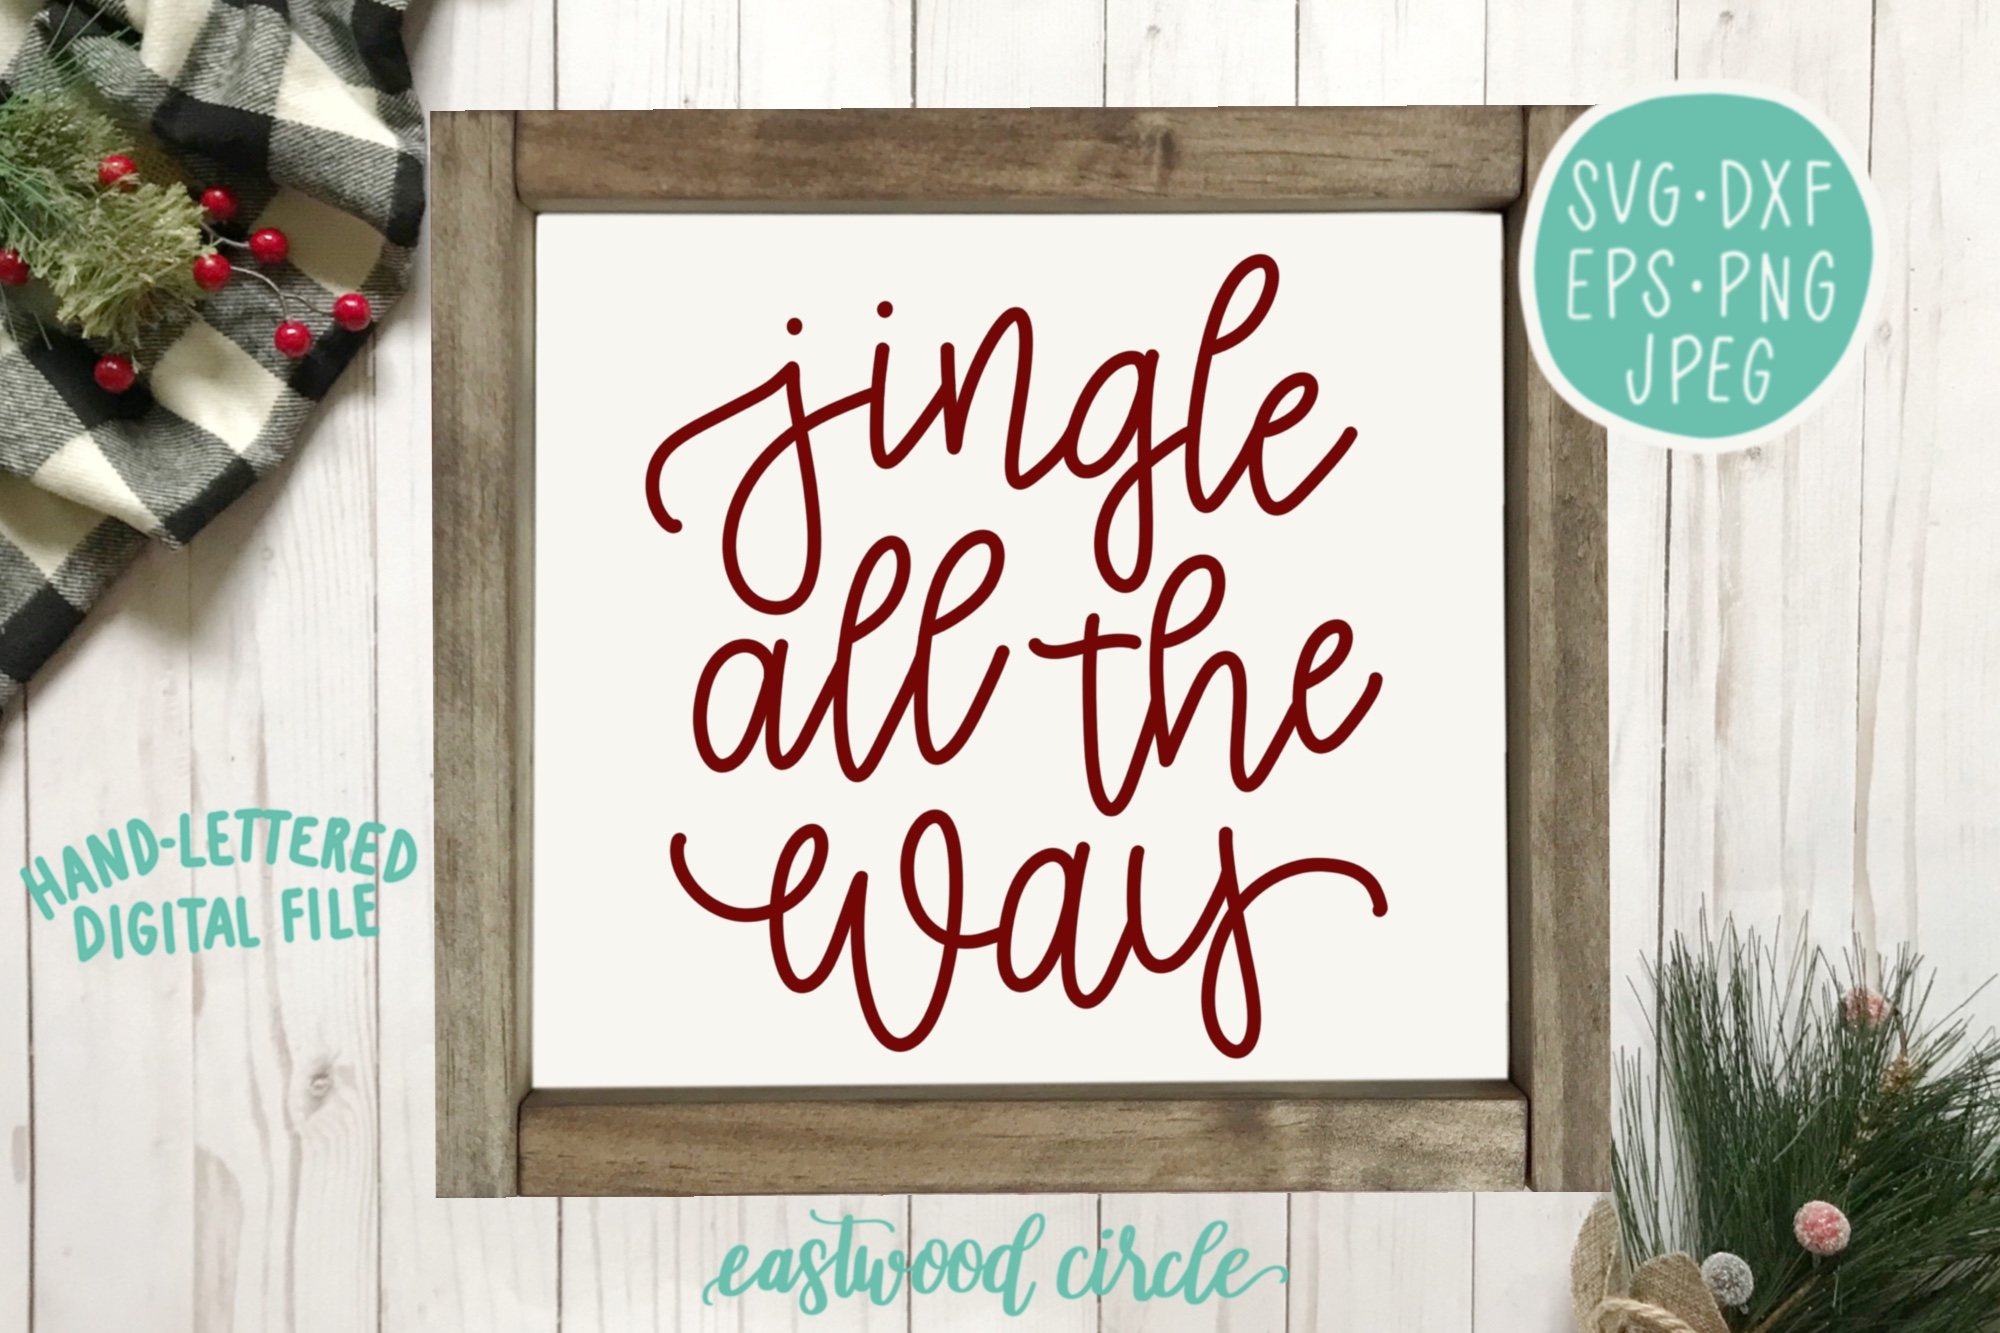 Christmas SVG Bundle - Hand Lettered SVG Files for Signs example image 3